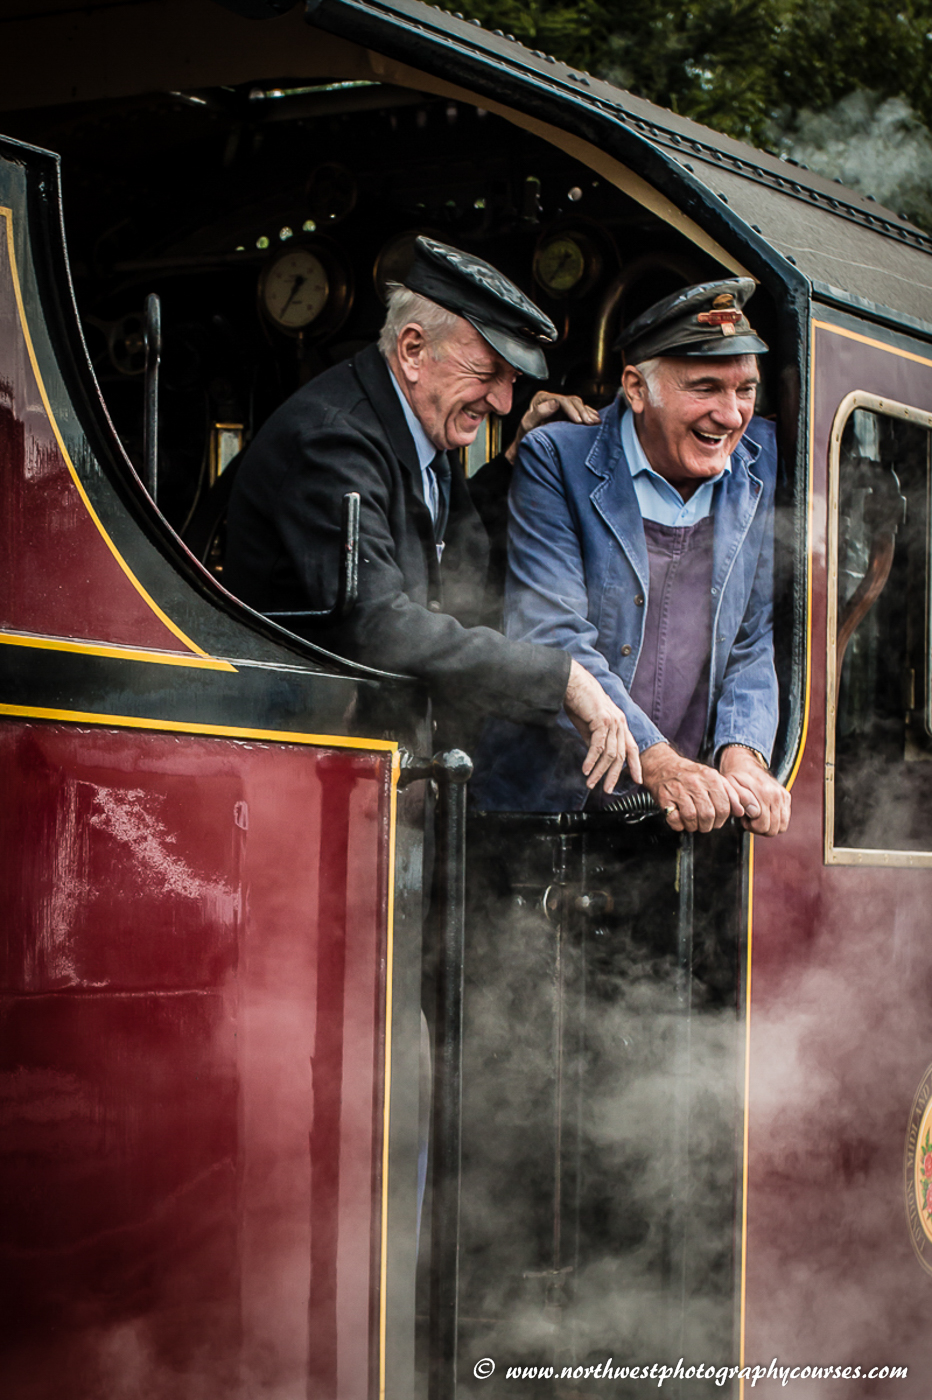 Train Photography Courses at the East Lancashire